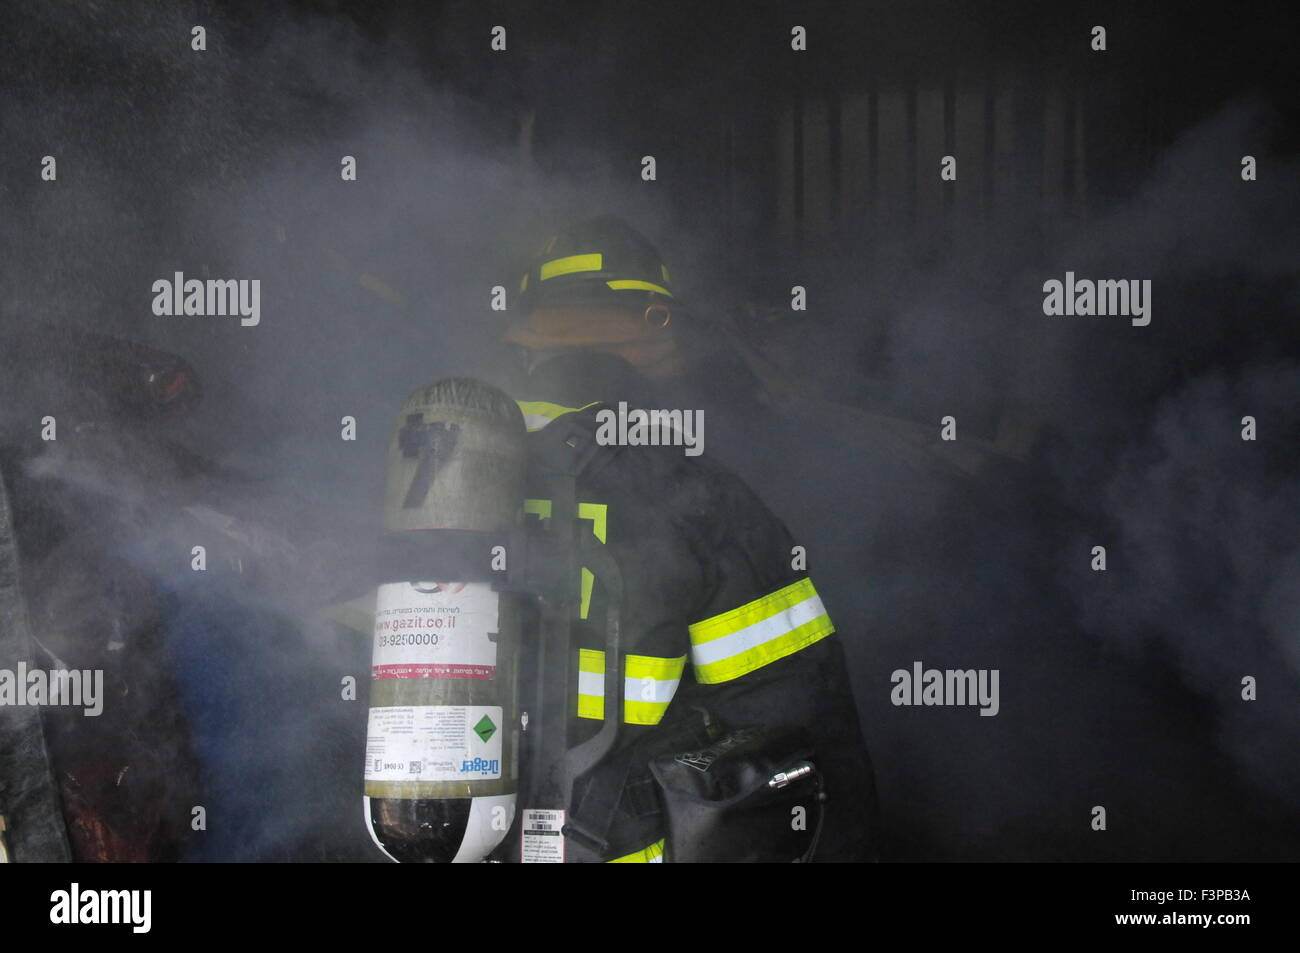 Firefighters with protective equipment in a smoke filled room - Stock Image